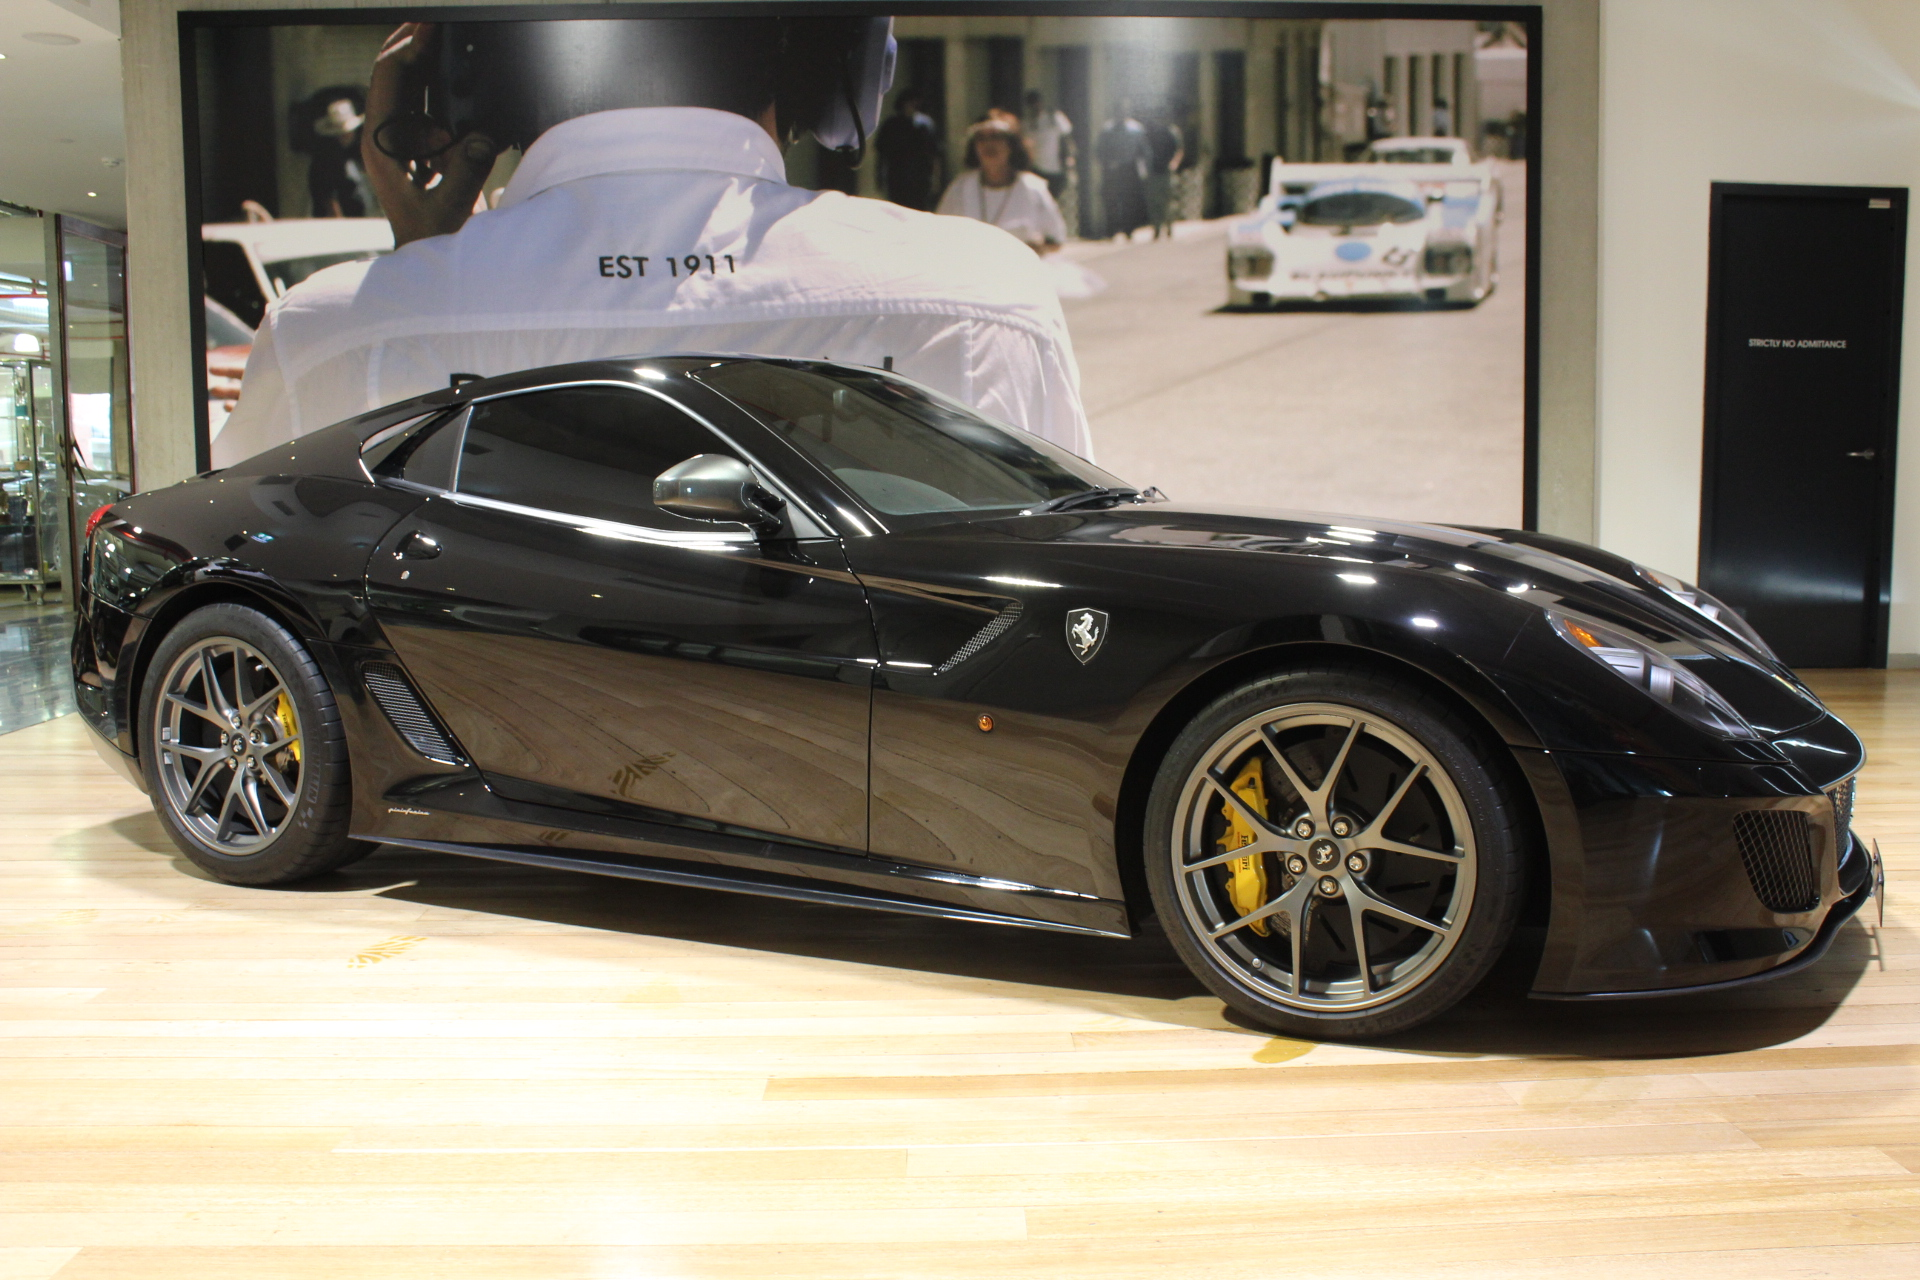 2010 Ferrari 599 GTO- sold in Australia